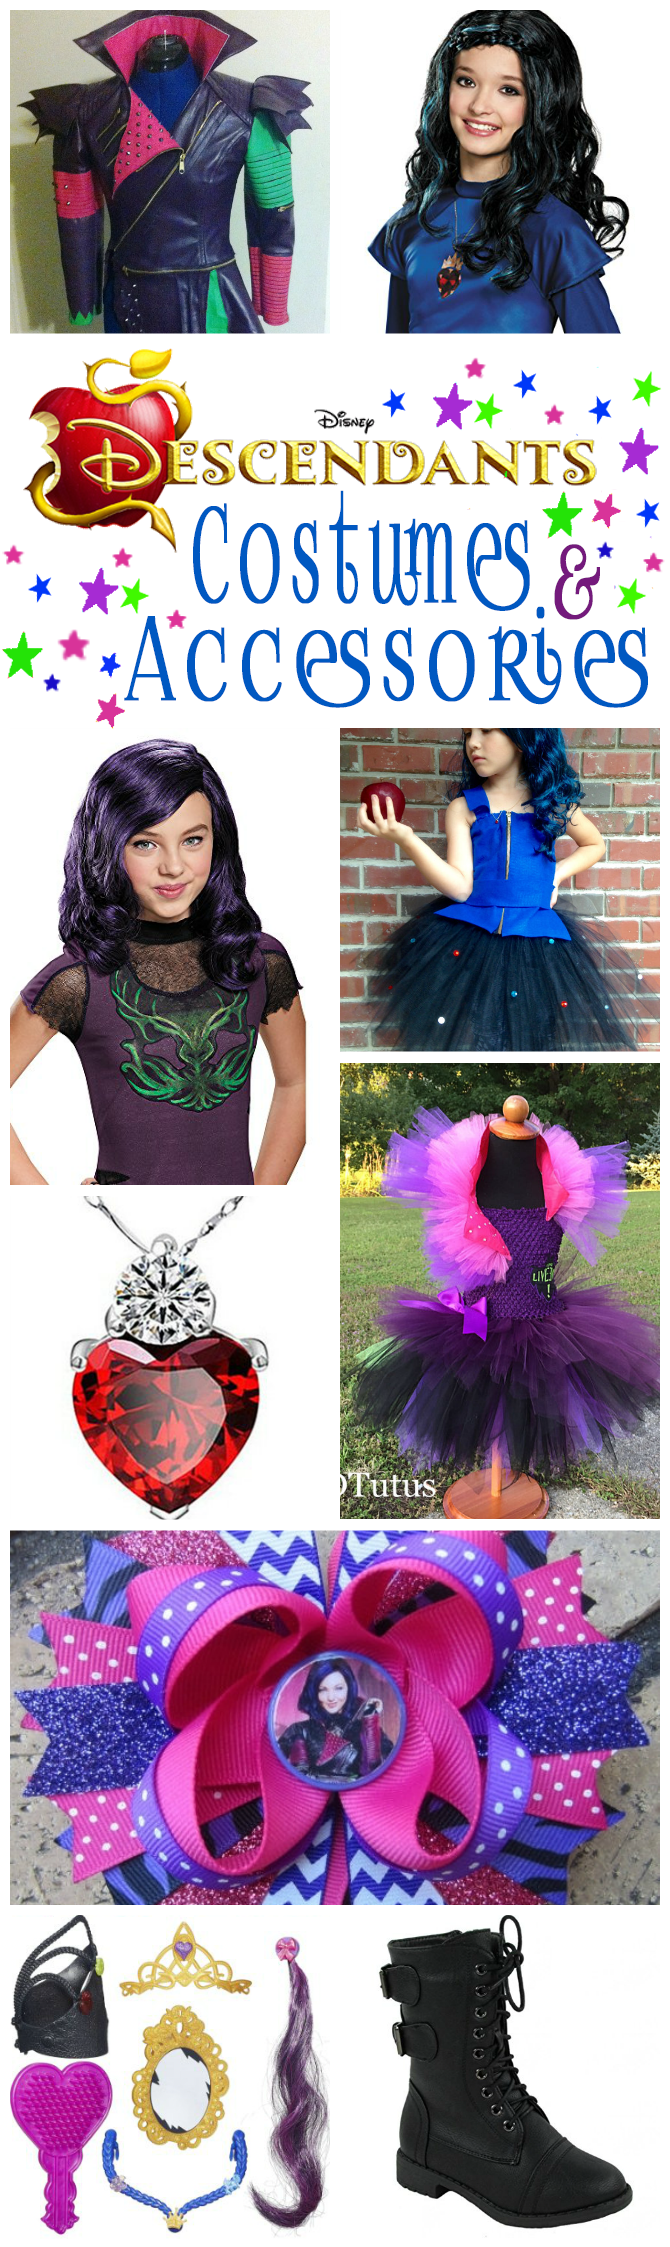 Disney Descendants Costumes And Accessories | Includes A Selection Of Costumes Tutu Dresses Hair  sc 1 st  OMG! Gift Emporium & Disney Descendants Costumes And Accessories | OMG! Gift Emporium